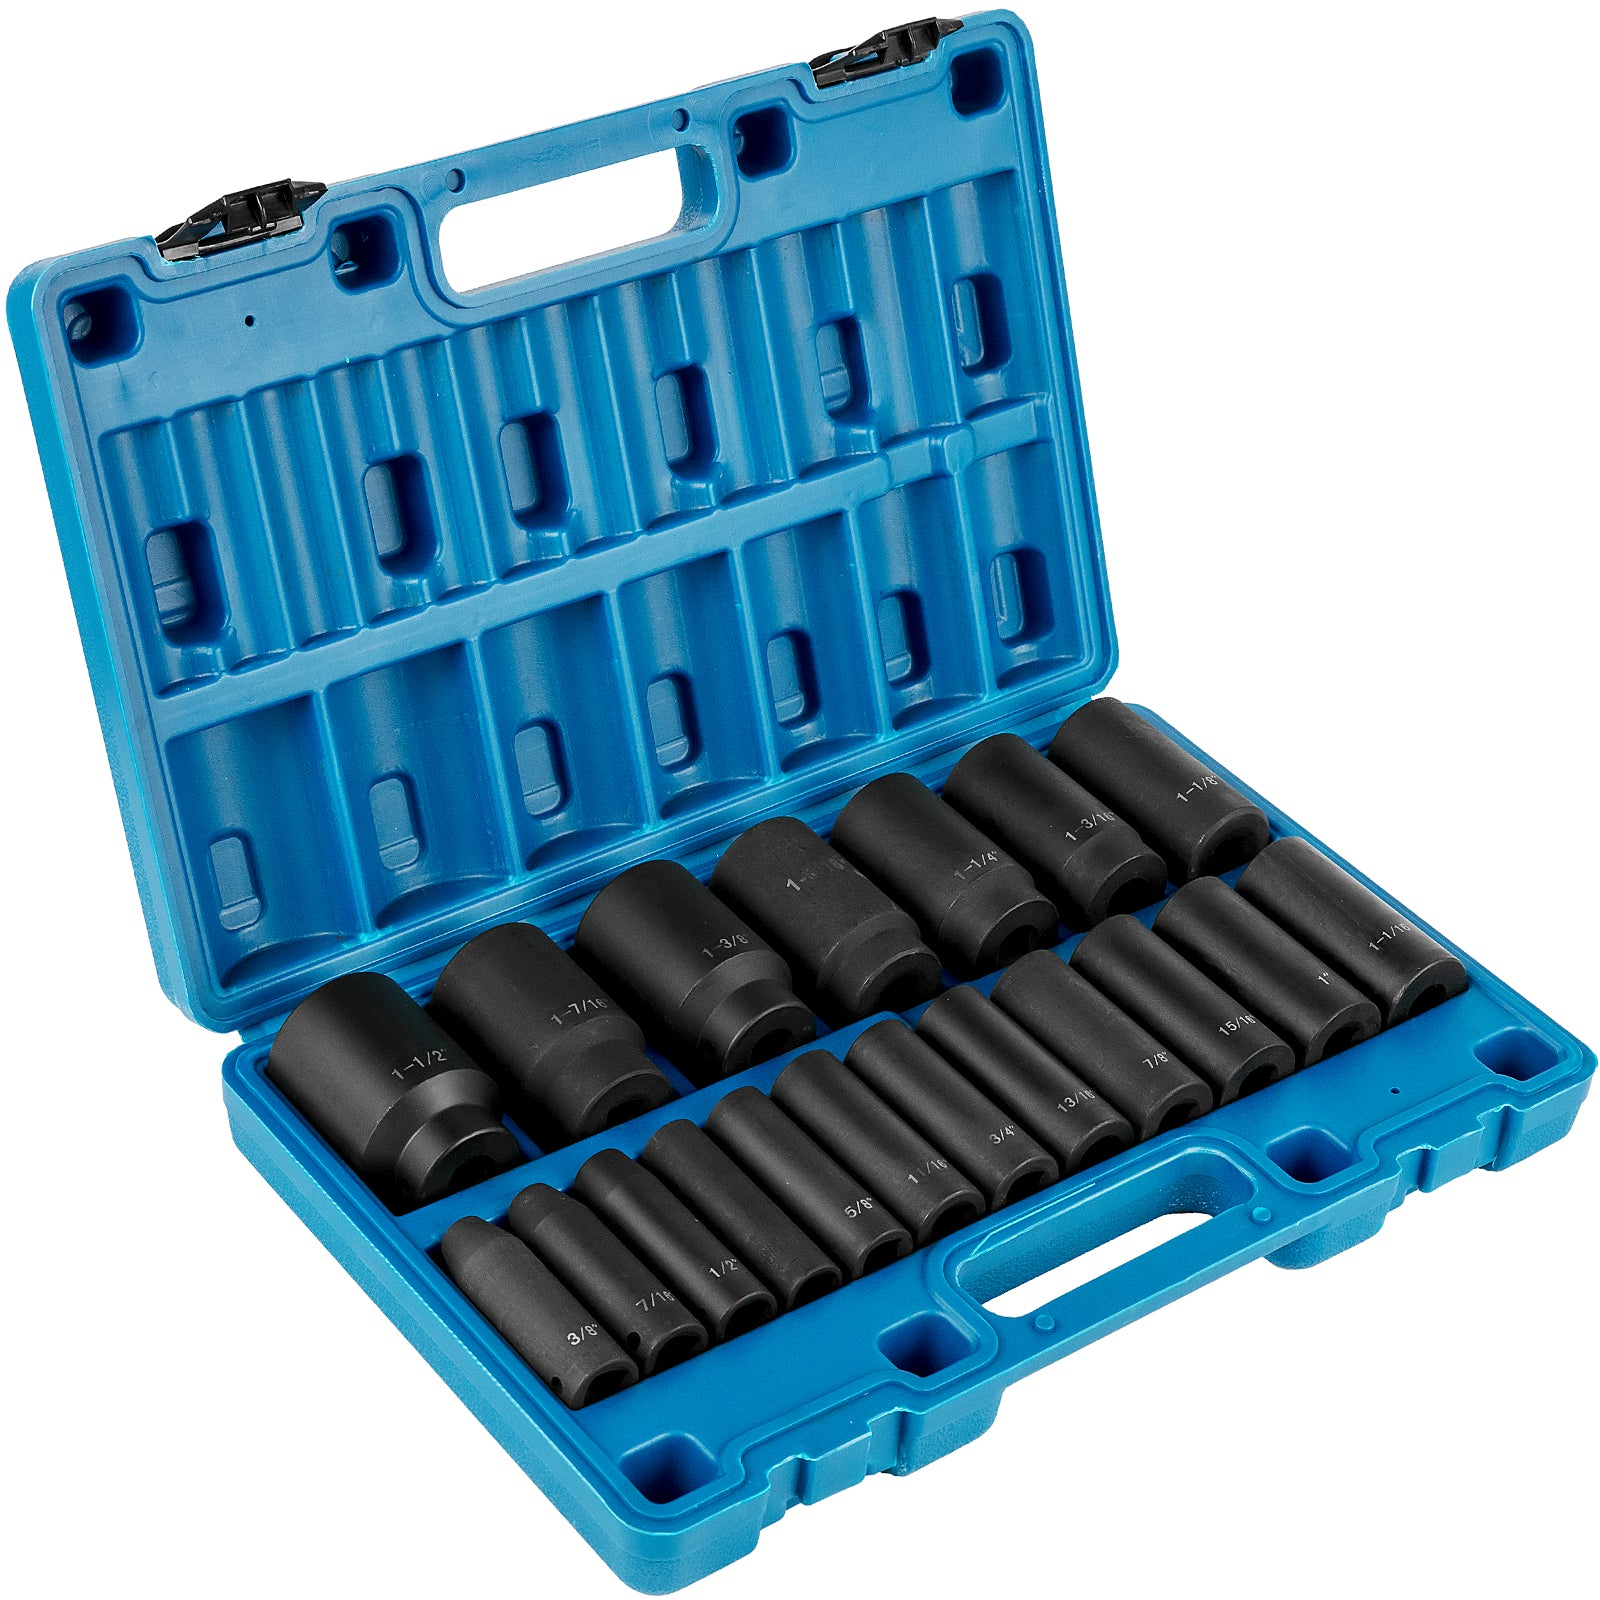 Vevor Impact Socket Set 1/2 Inch Drive 19pcs 3/8 Inch To 1-1/2 Inch Deep Length